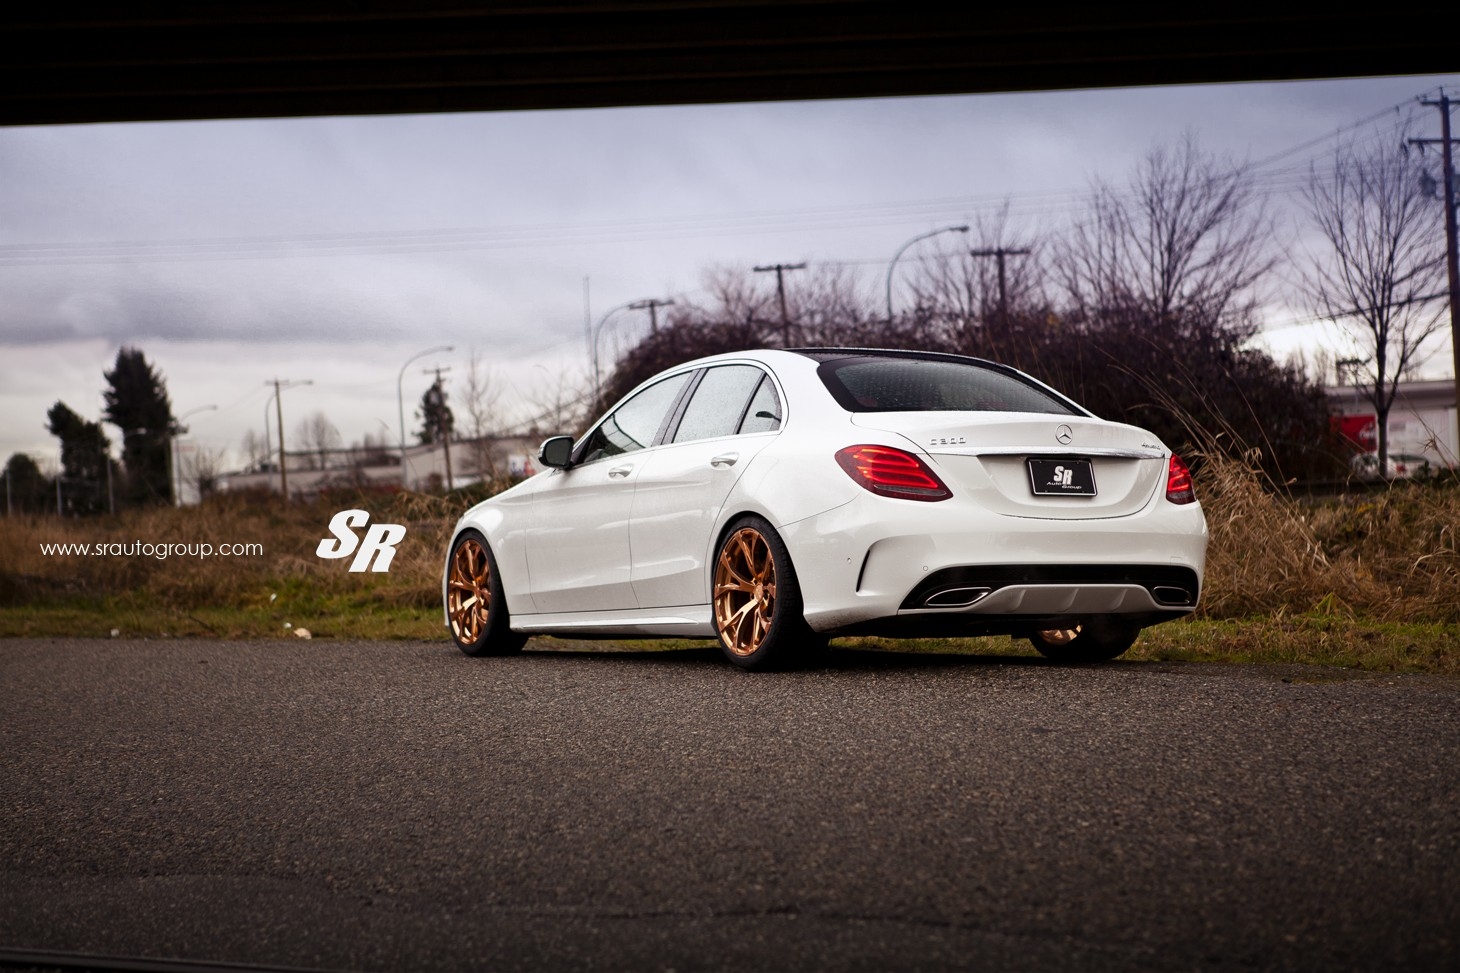 2015 mercedes c300 gets gold pur wheels shows its rich for Mercedes benz c300 rims